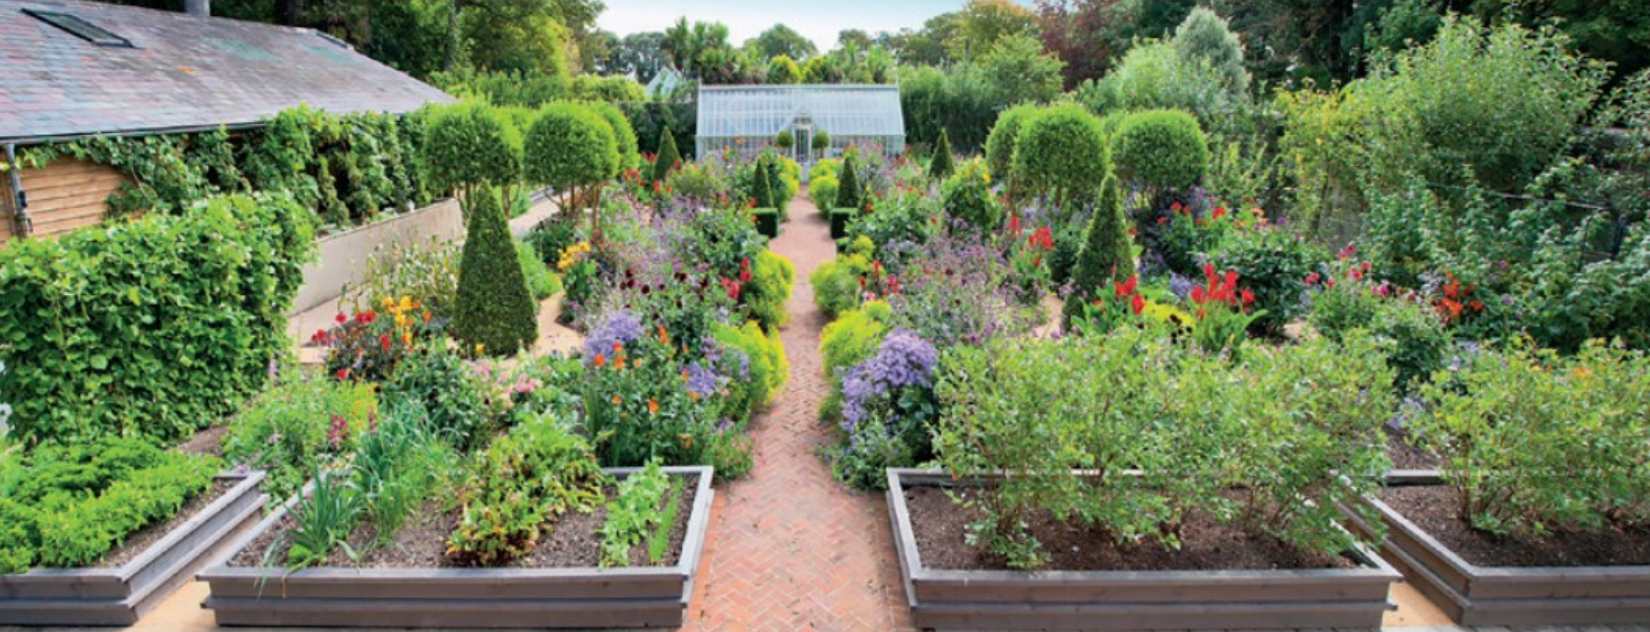 Old park walled kitchen garden.png